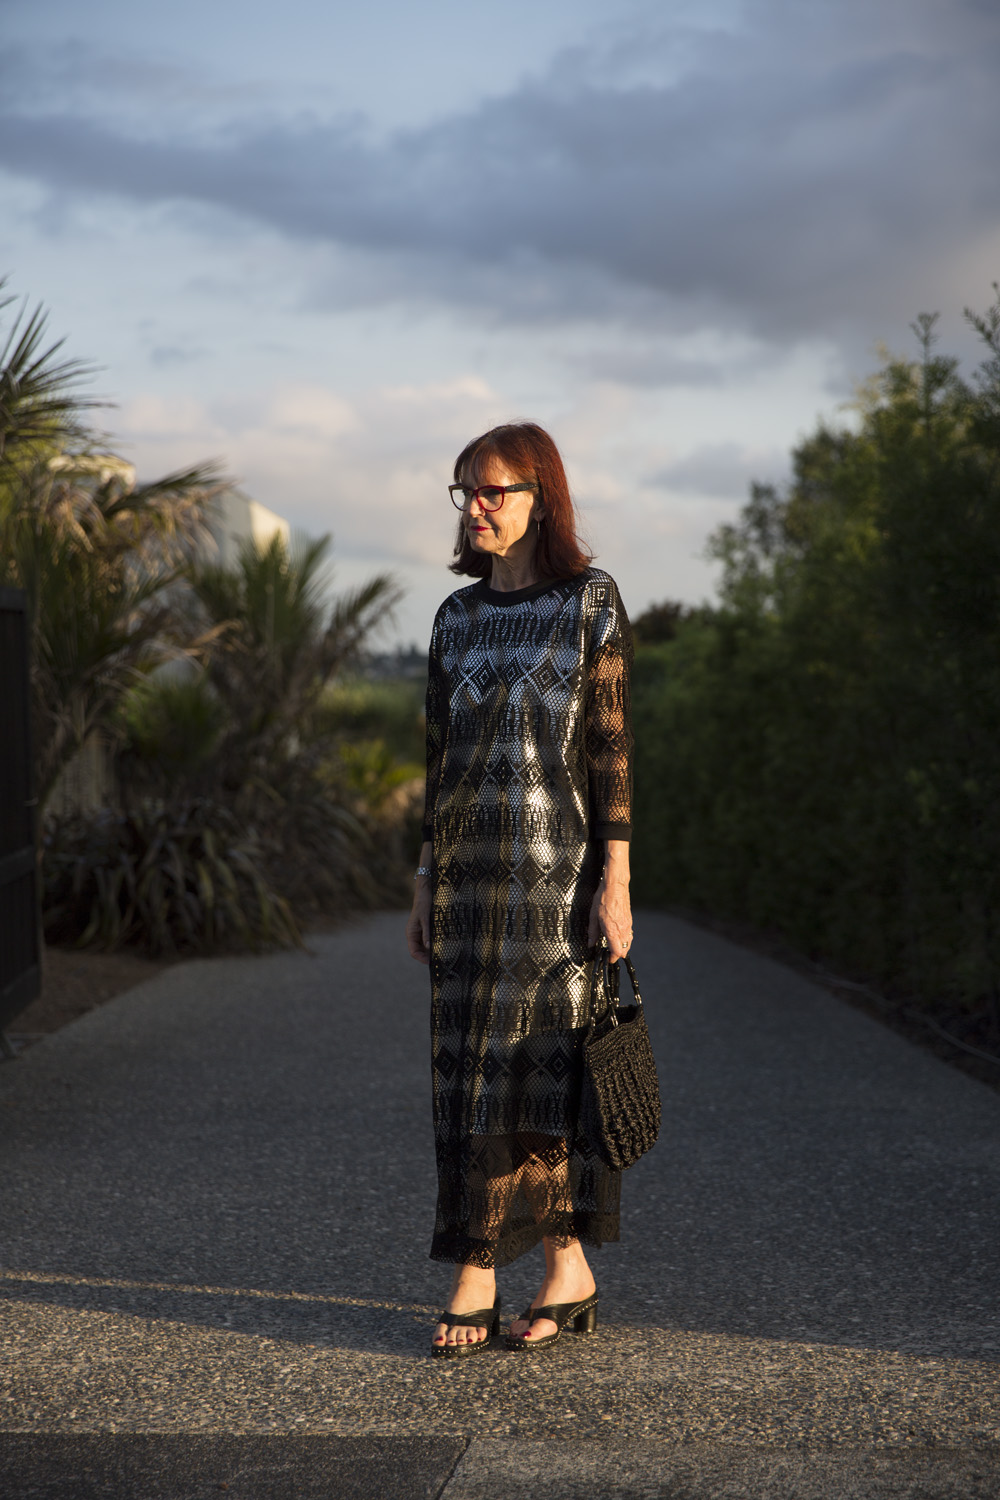 Mary Anne wears Pardon My French dress over a self-made dress, Charles Jourdan shoes, Miu Miu spectacles and self-made bag.